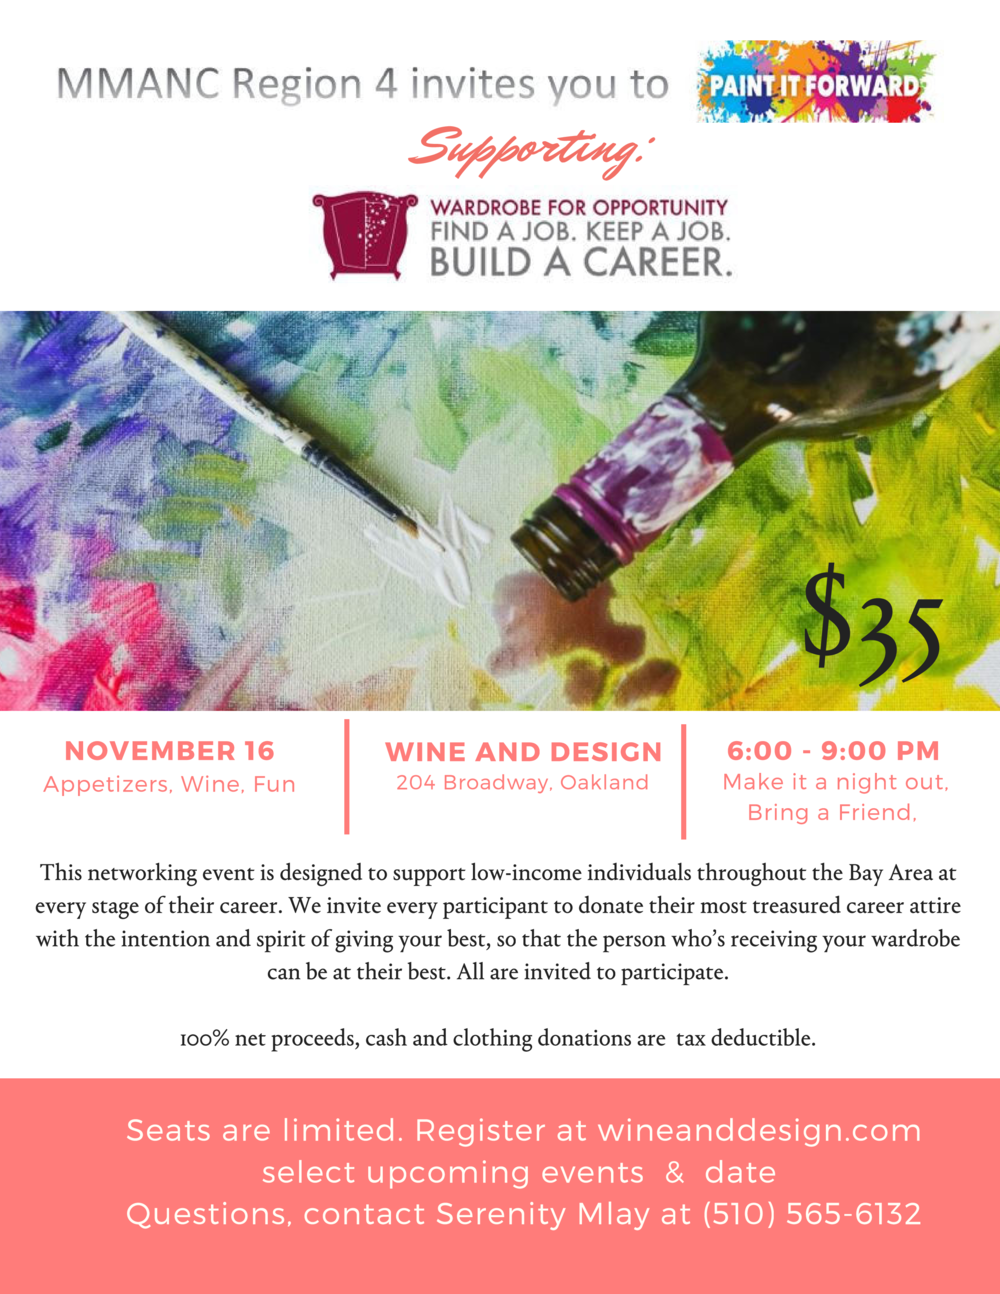 Wine and Design Event Paint It Forward